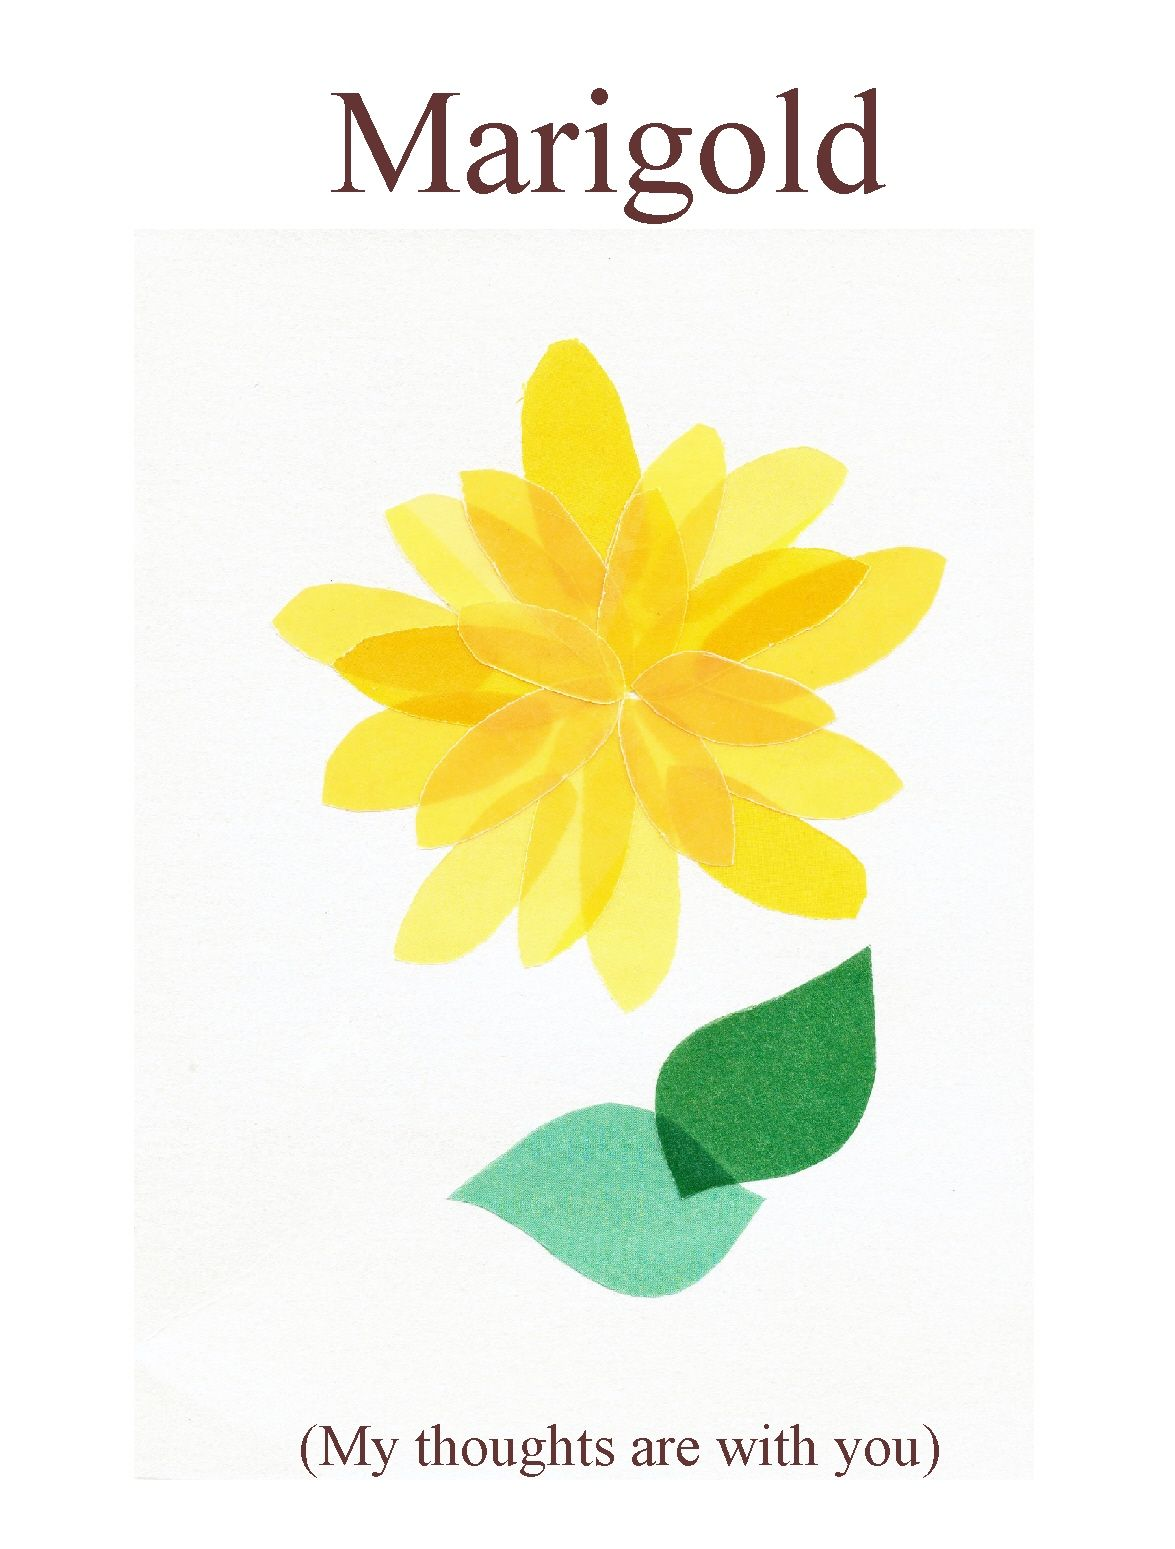 Marigold - My thoughts are with you.